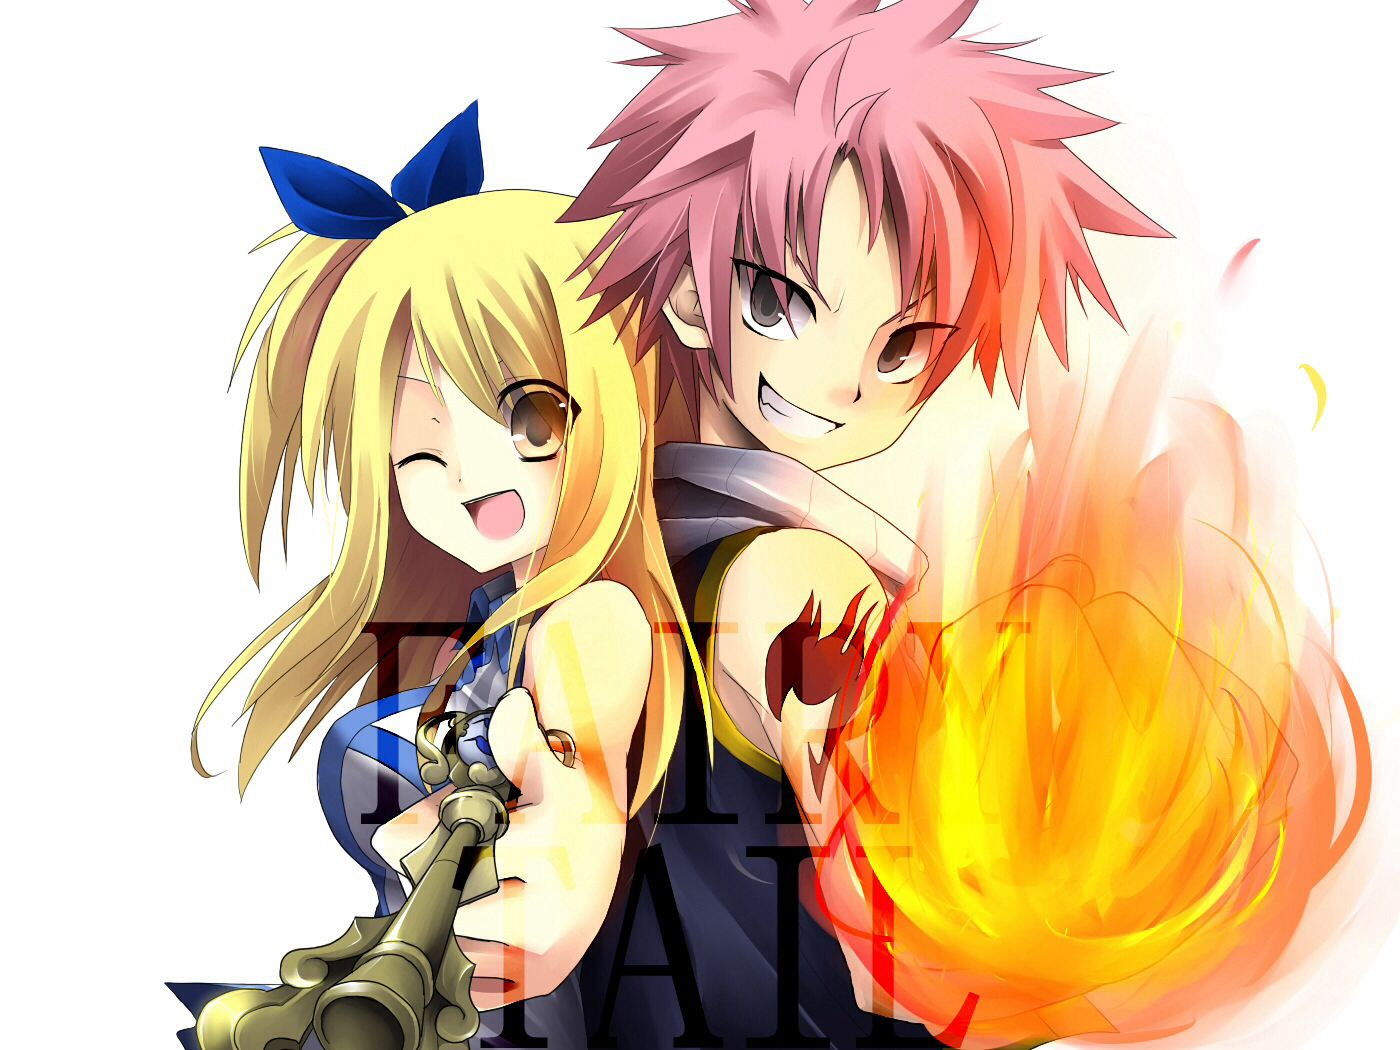 Lucy and Natsu (Fairy Tale) Anime/Chibi Pinterest